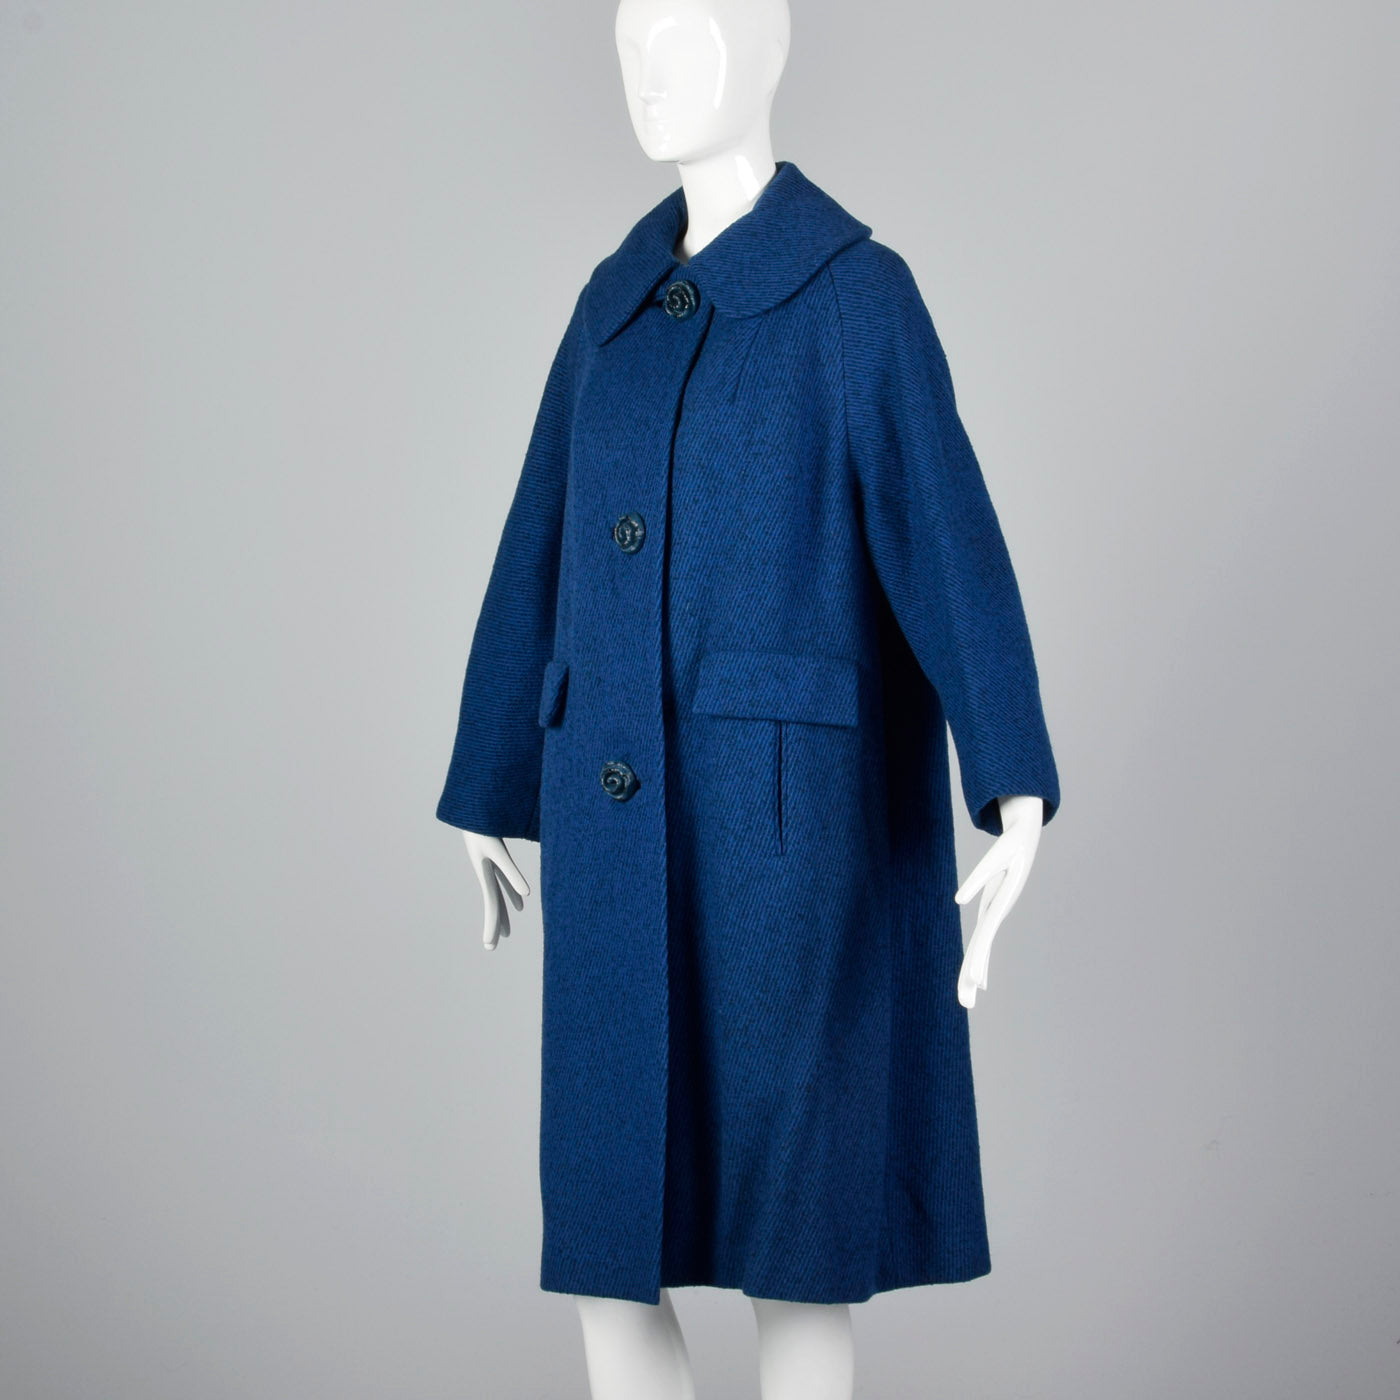 1950s Blue Tweed Coat with Decorative Floral Buttons